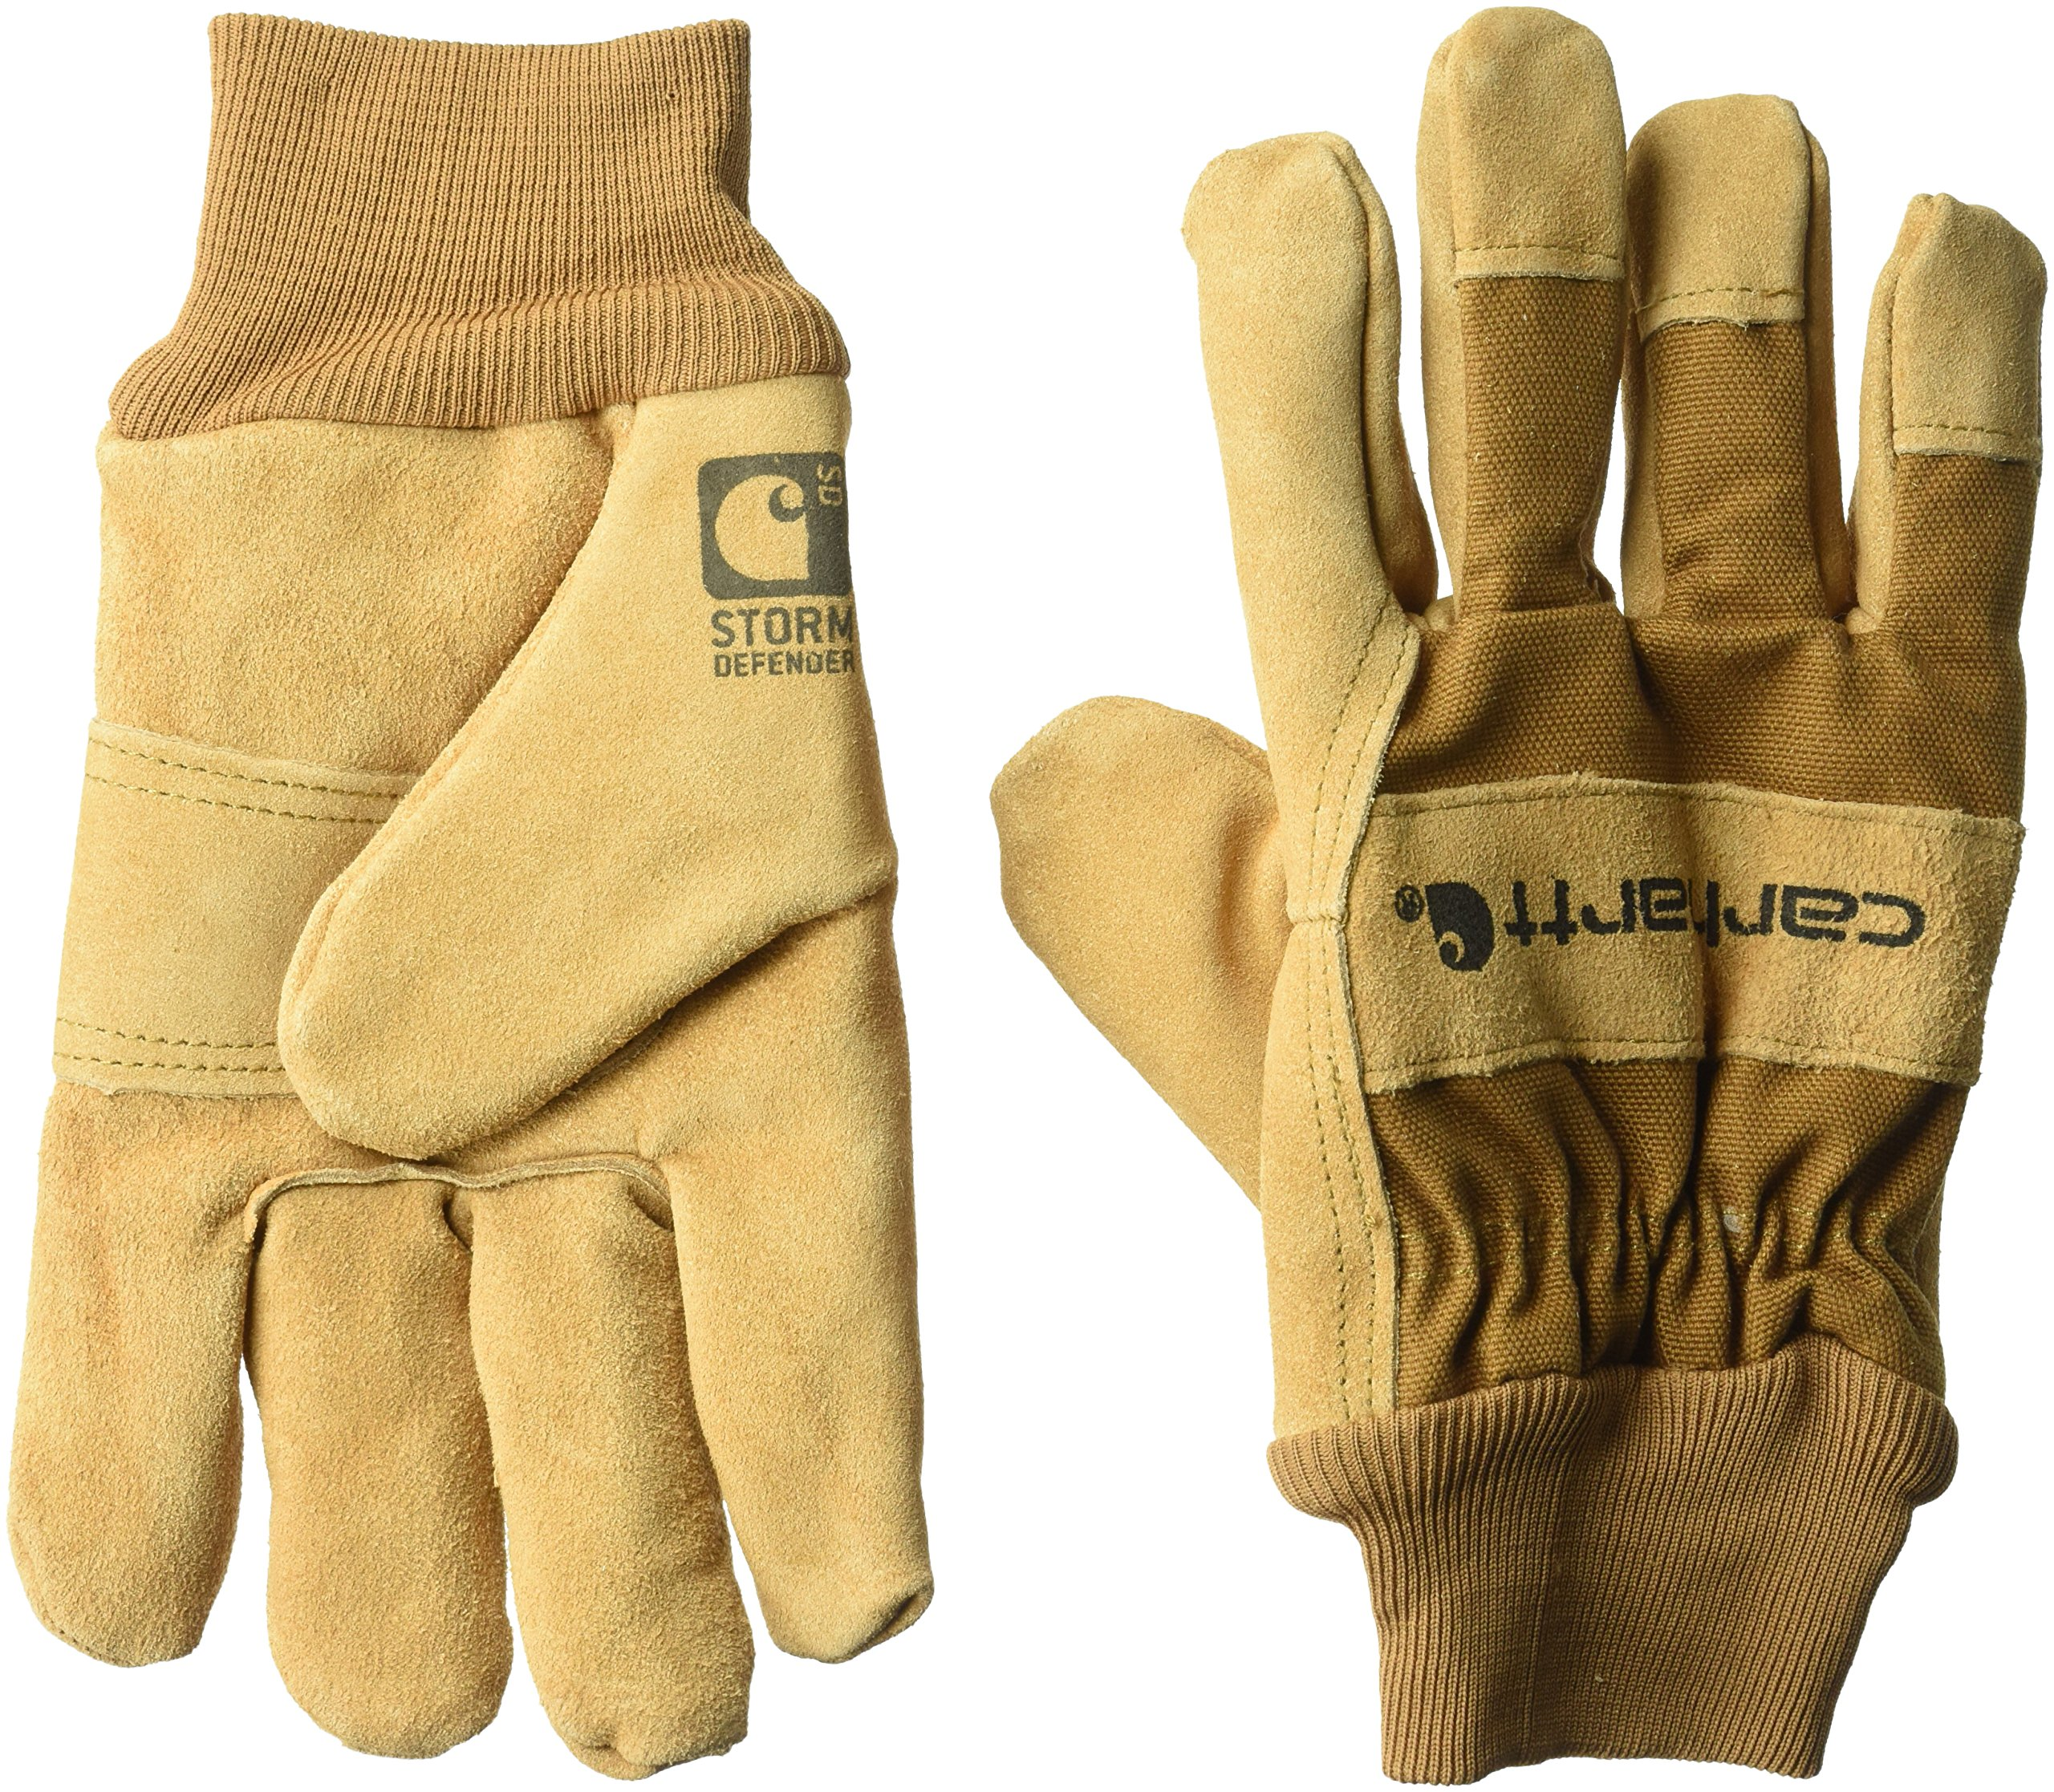 Carhartt Men's Wb Suede Leather Waterproof Breathable Work Glove, Brown, Small